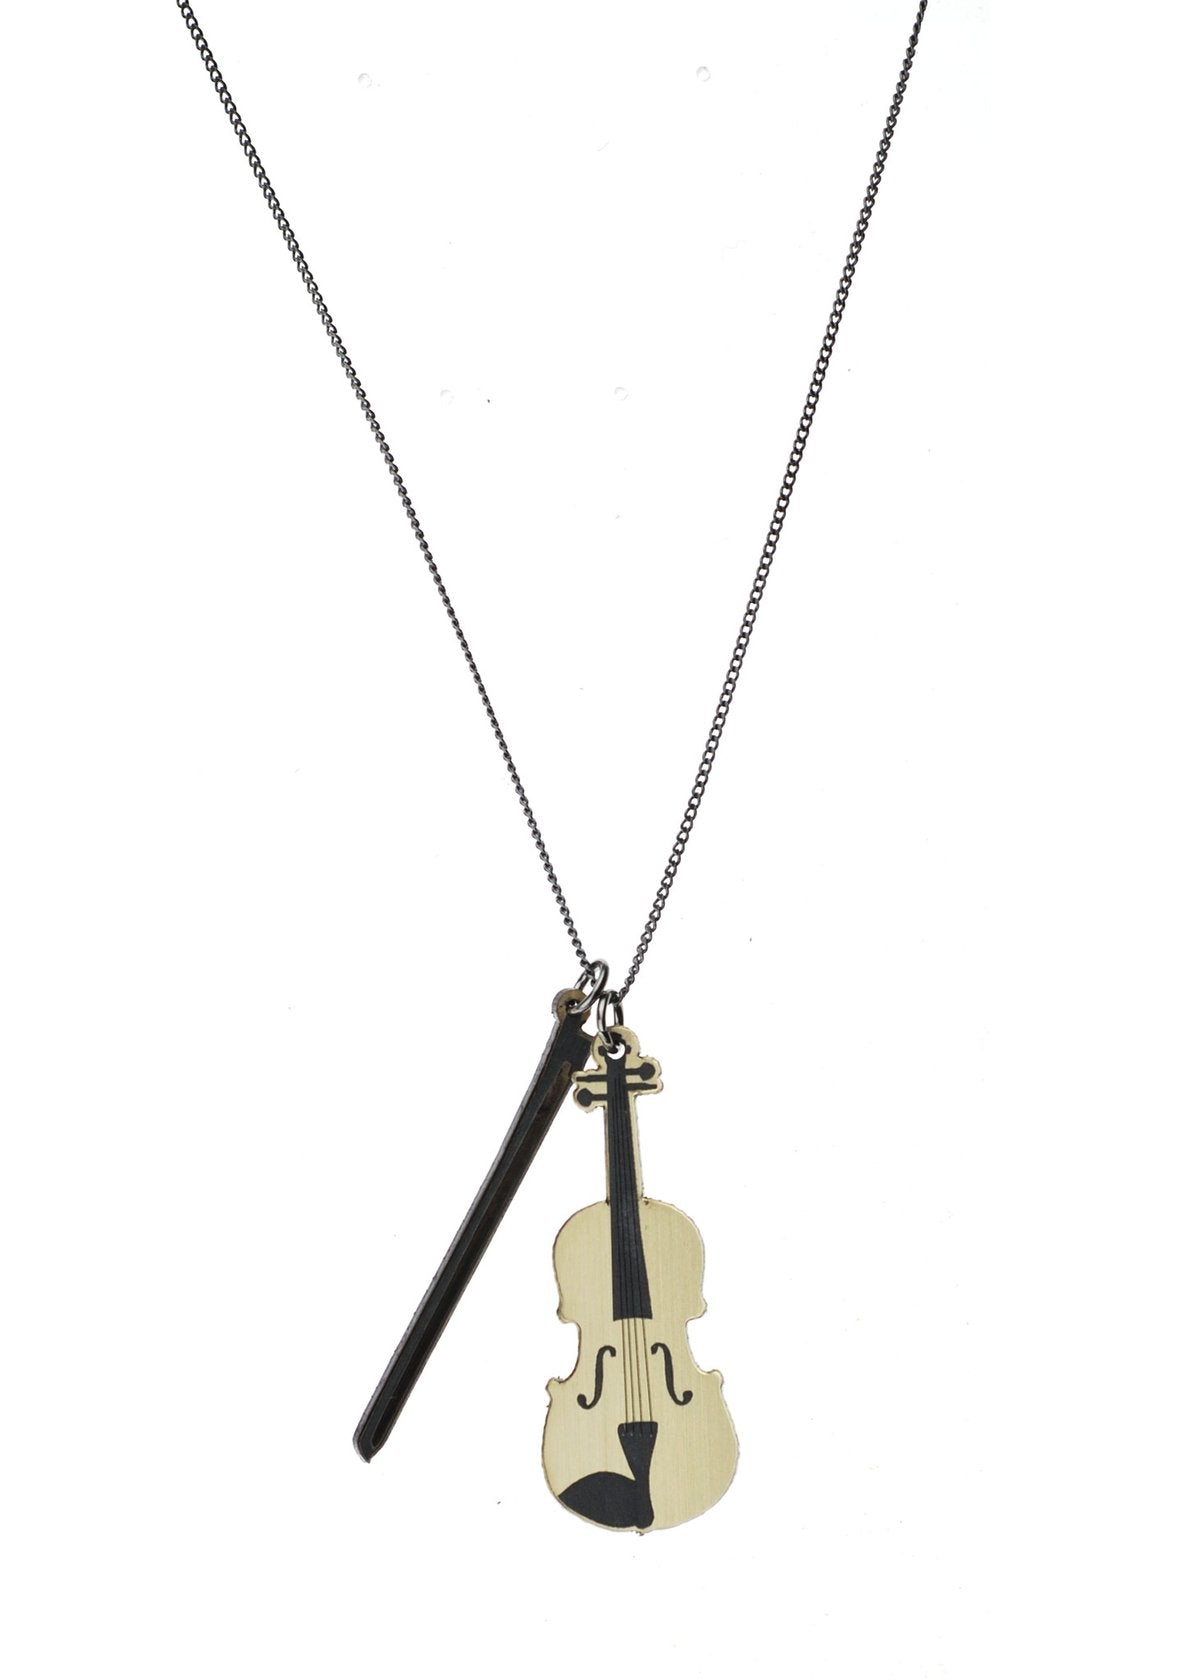 Necklace - Violin